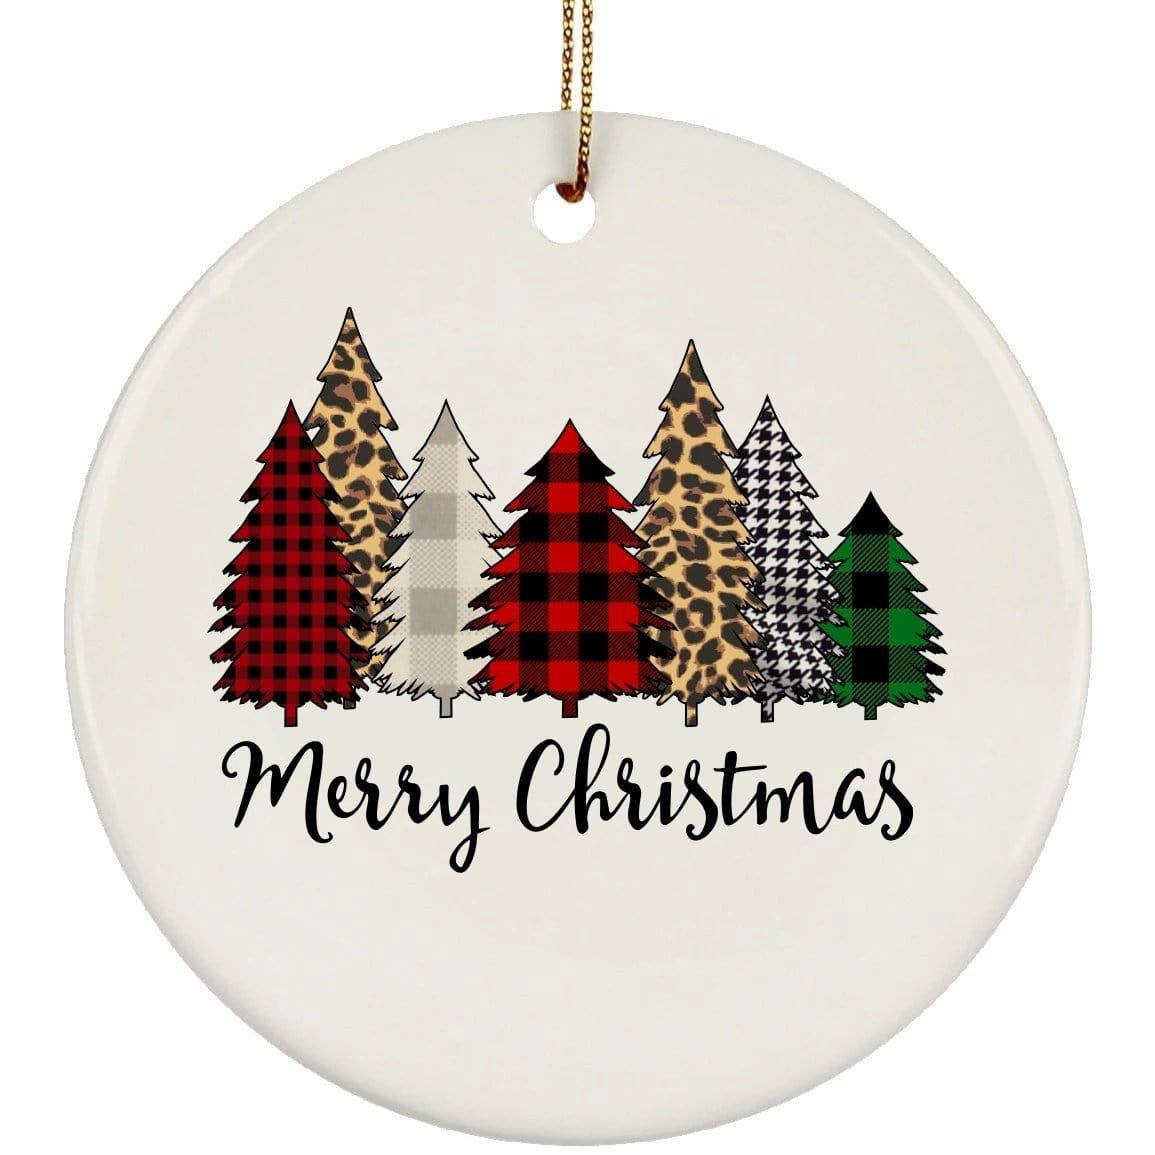 Merry Christmas Trees Christmas Ceramic Circle Ornament